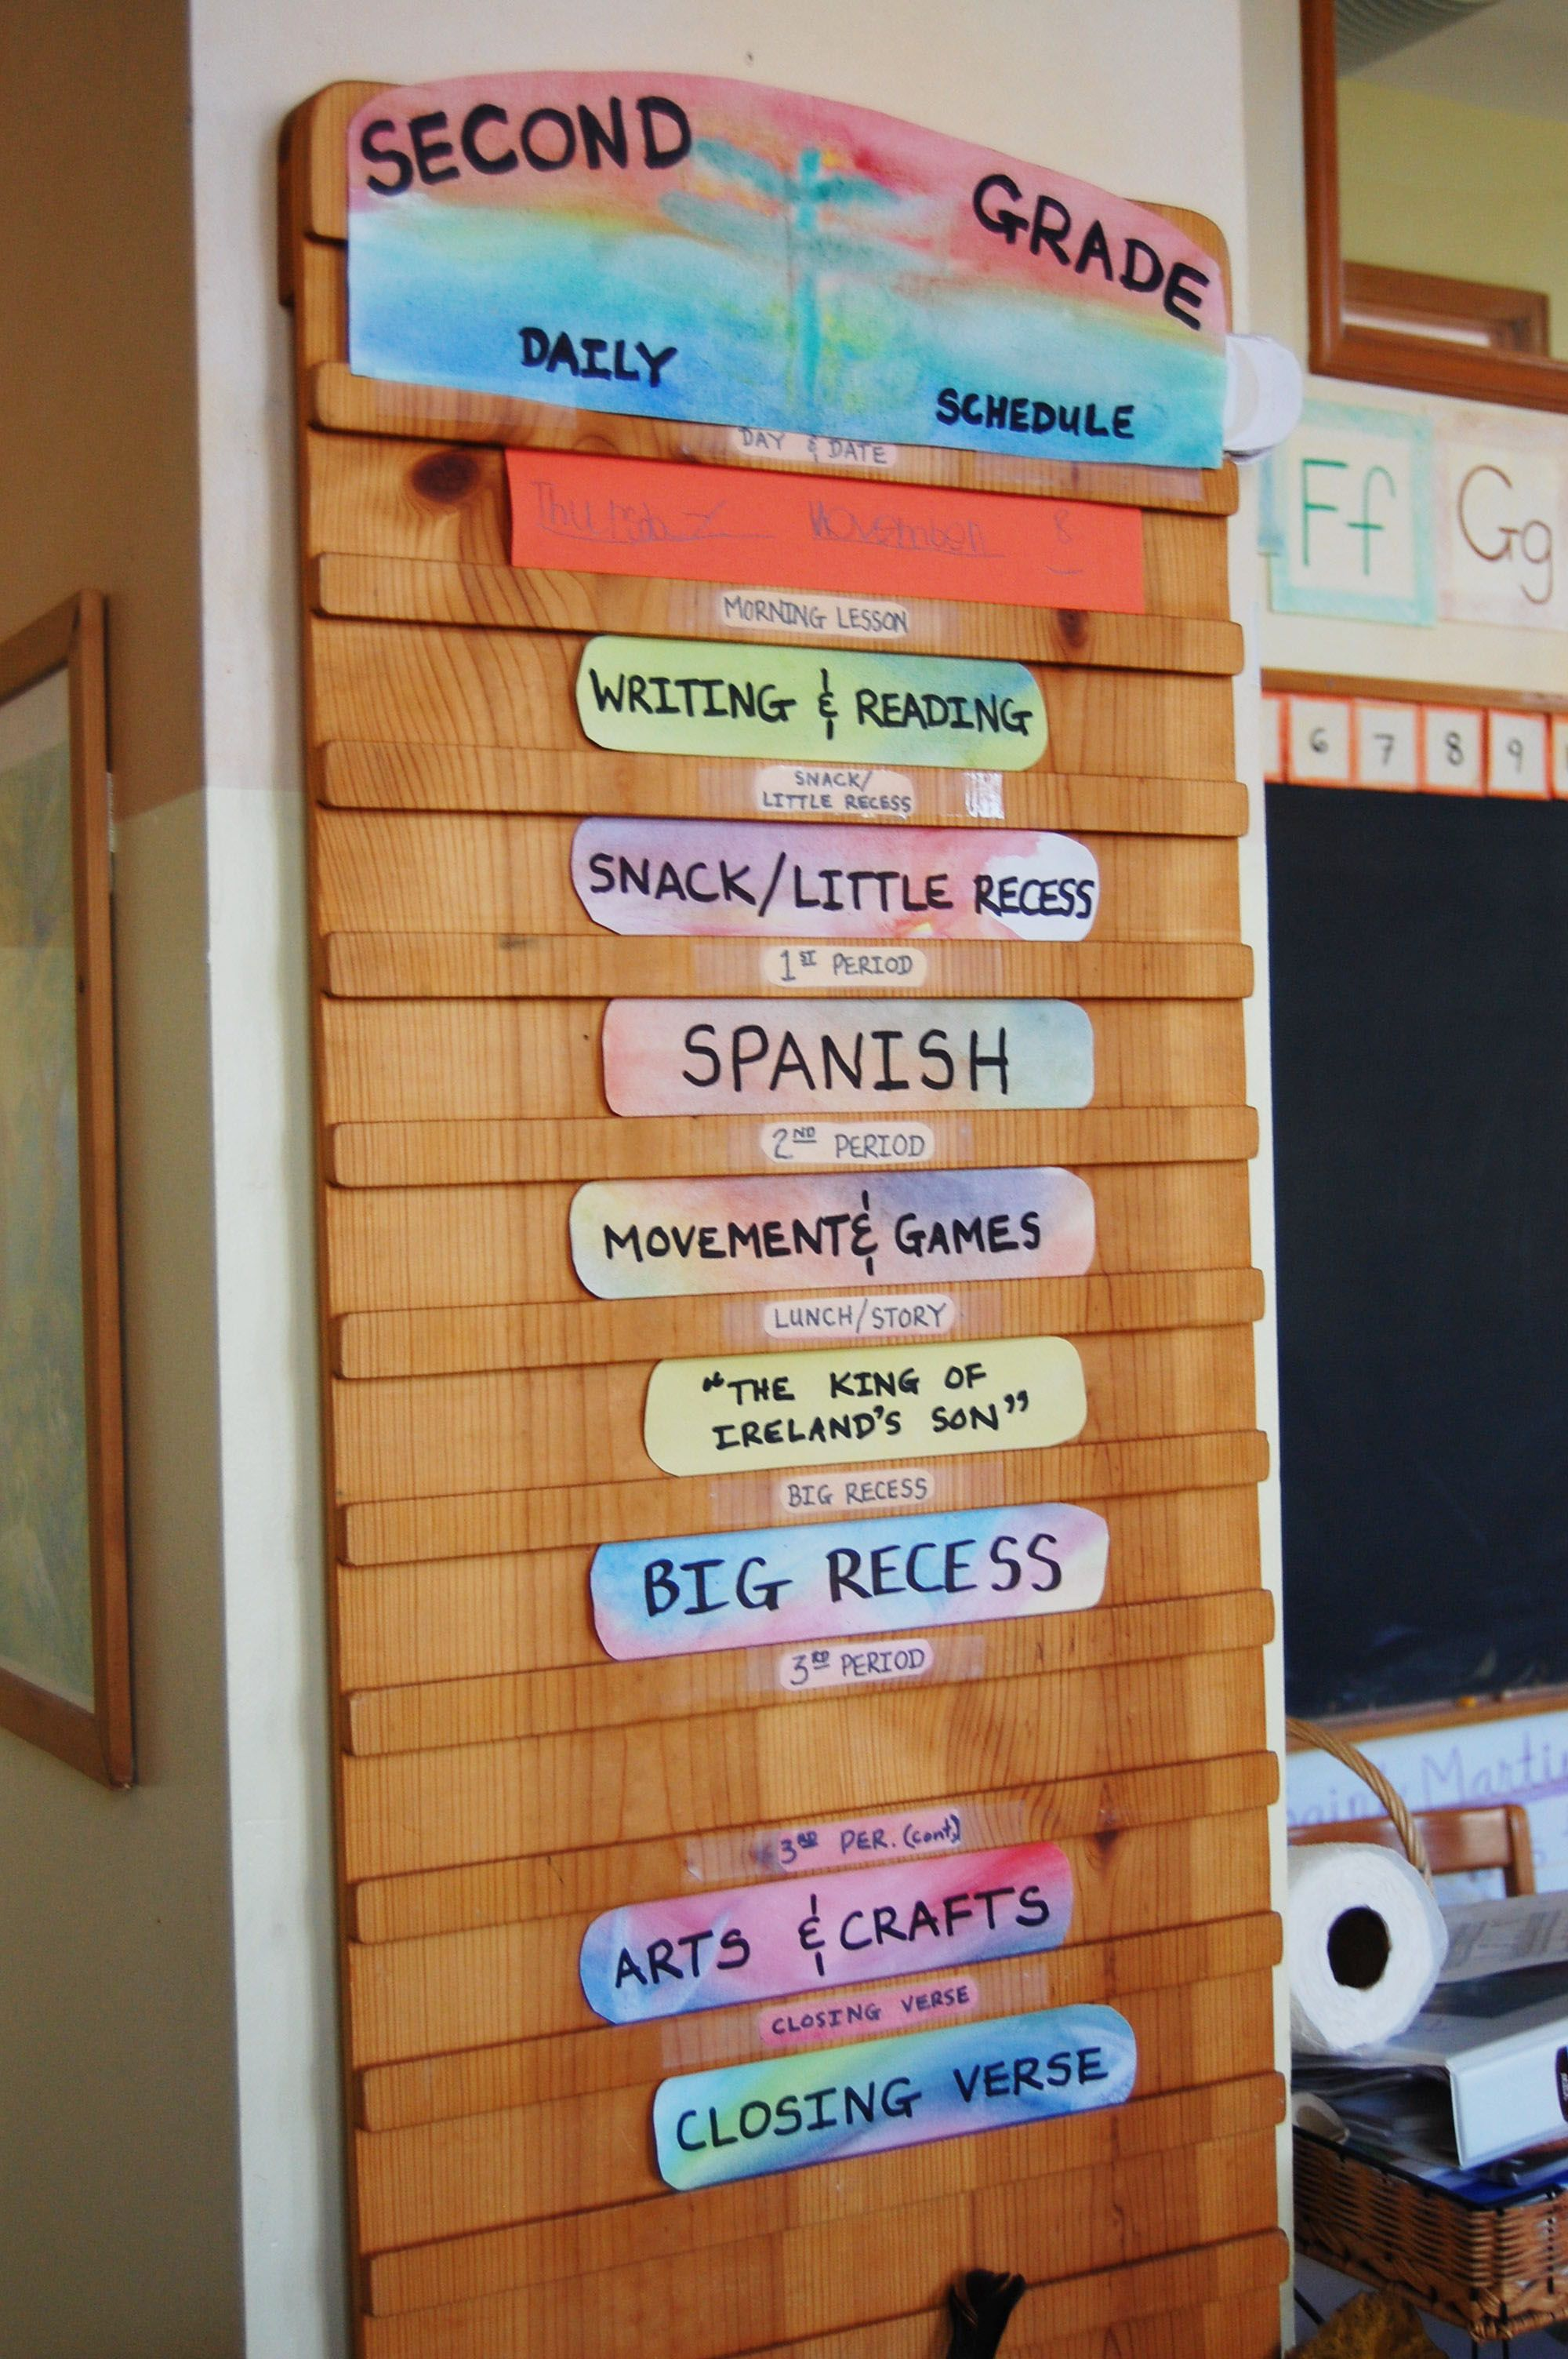 Second Grade Daily Schedule From City Of Lakes Waldorf School